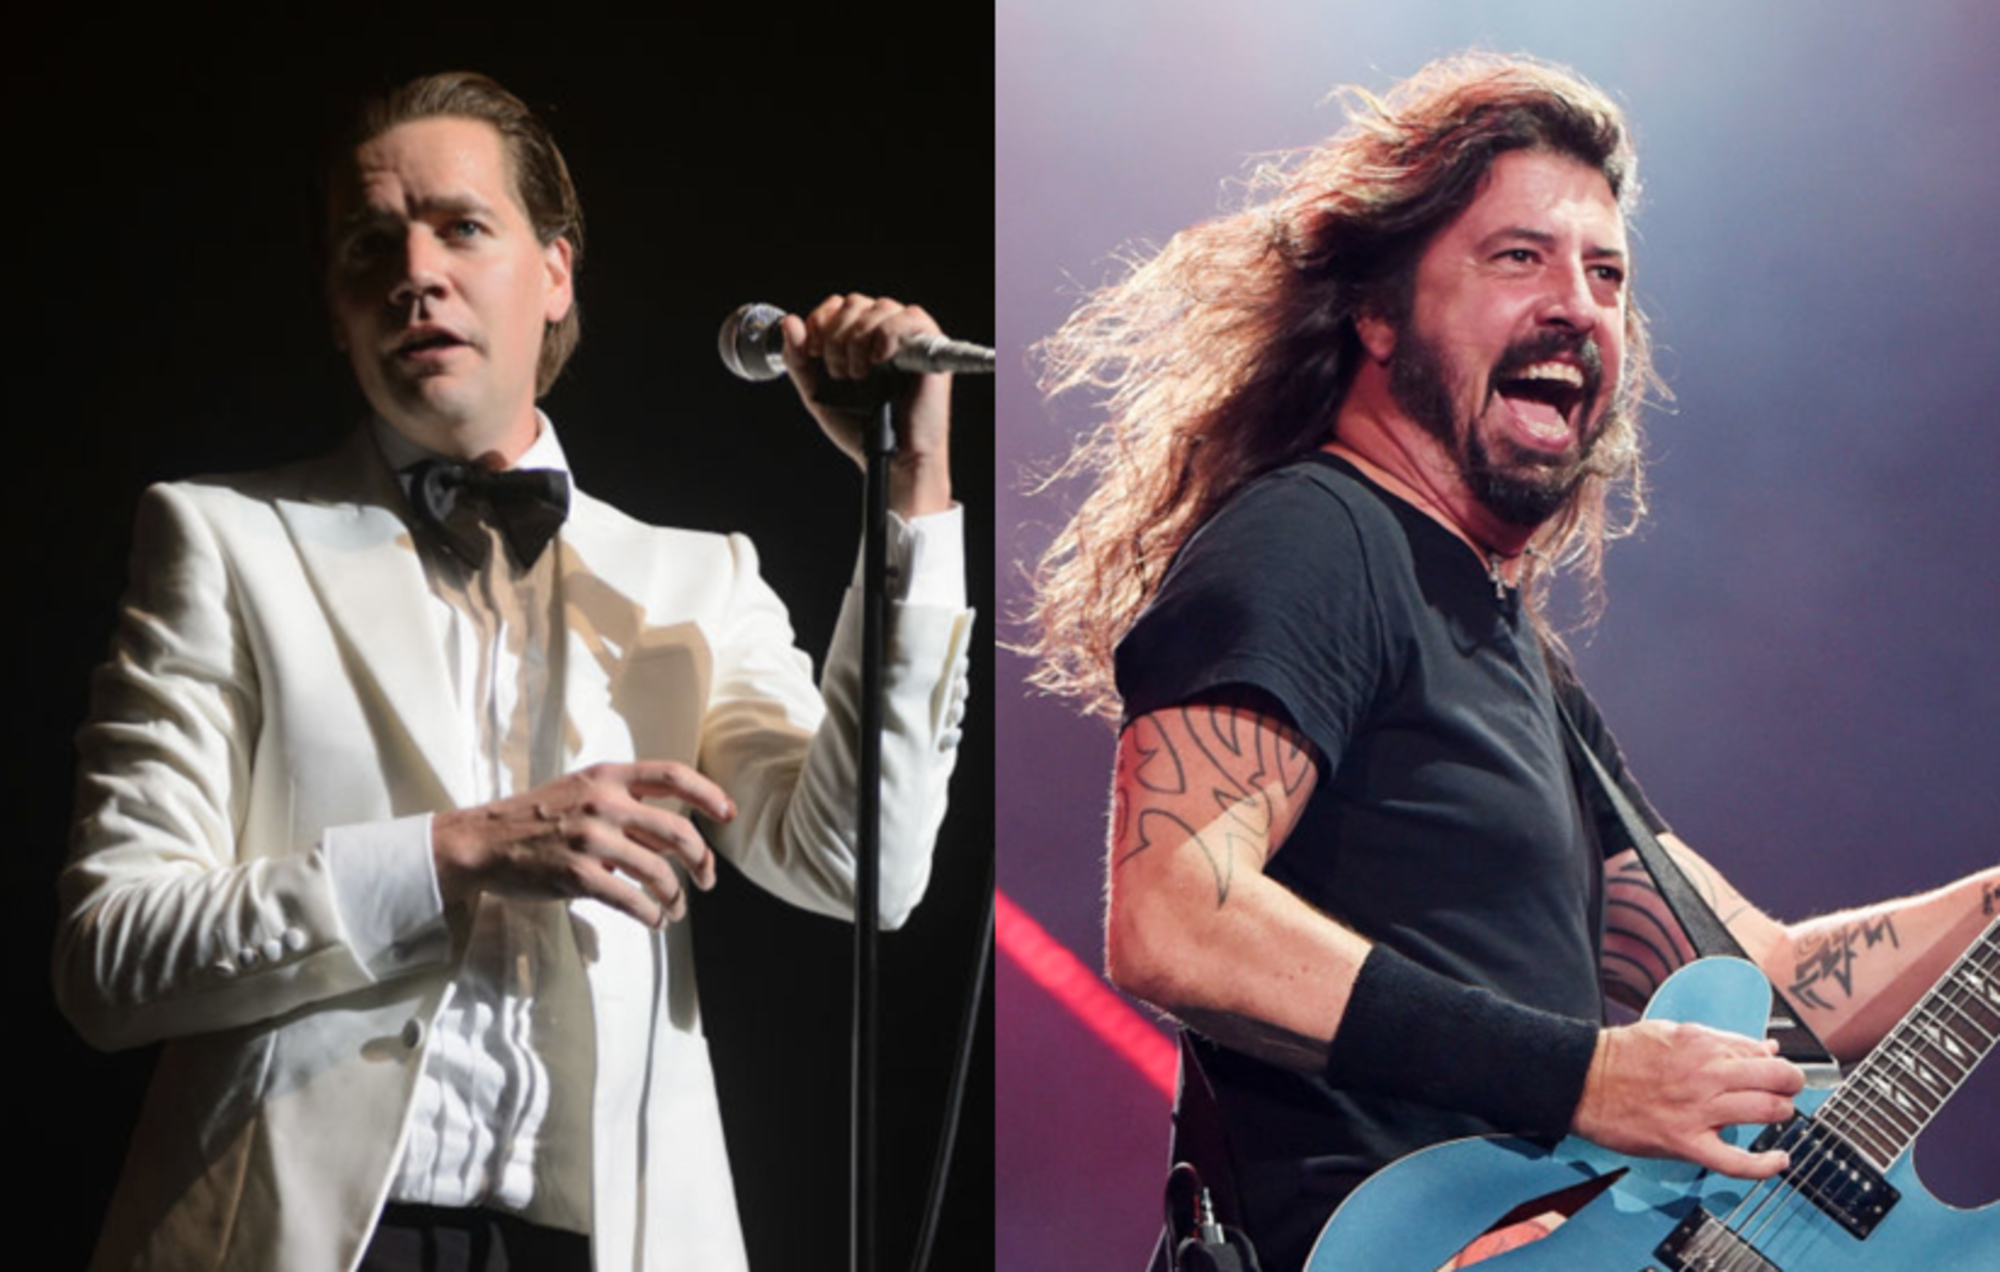 The Hives' Pelle Almqvist recalls the time he threw up at Dave Grohl's house on New Year's Eve